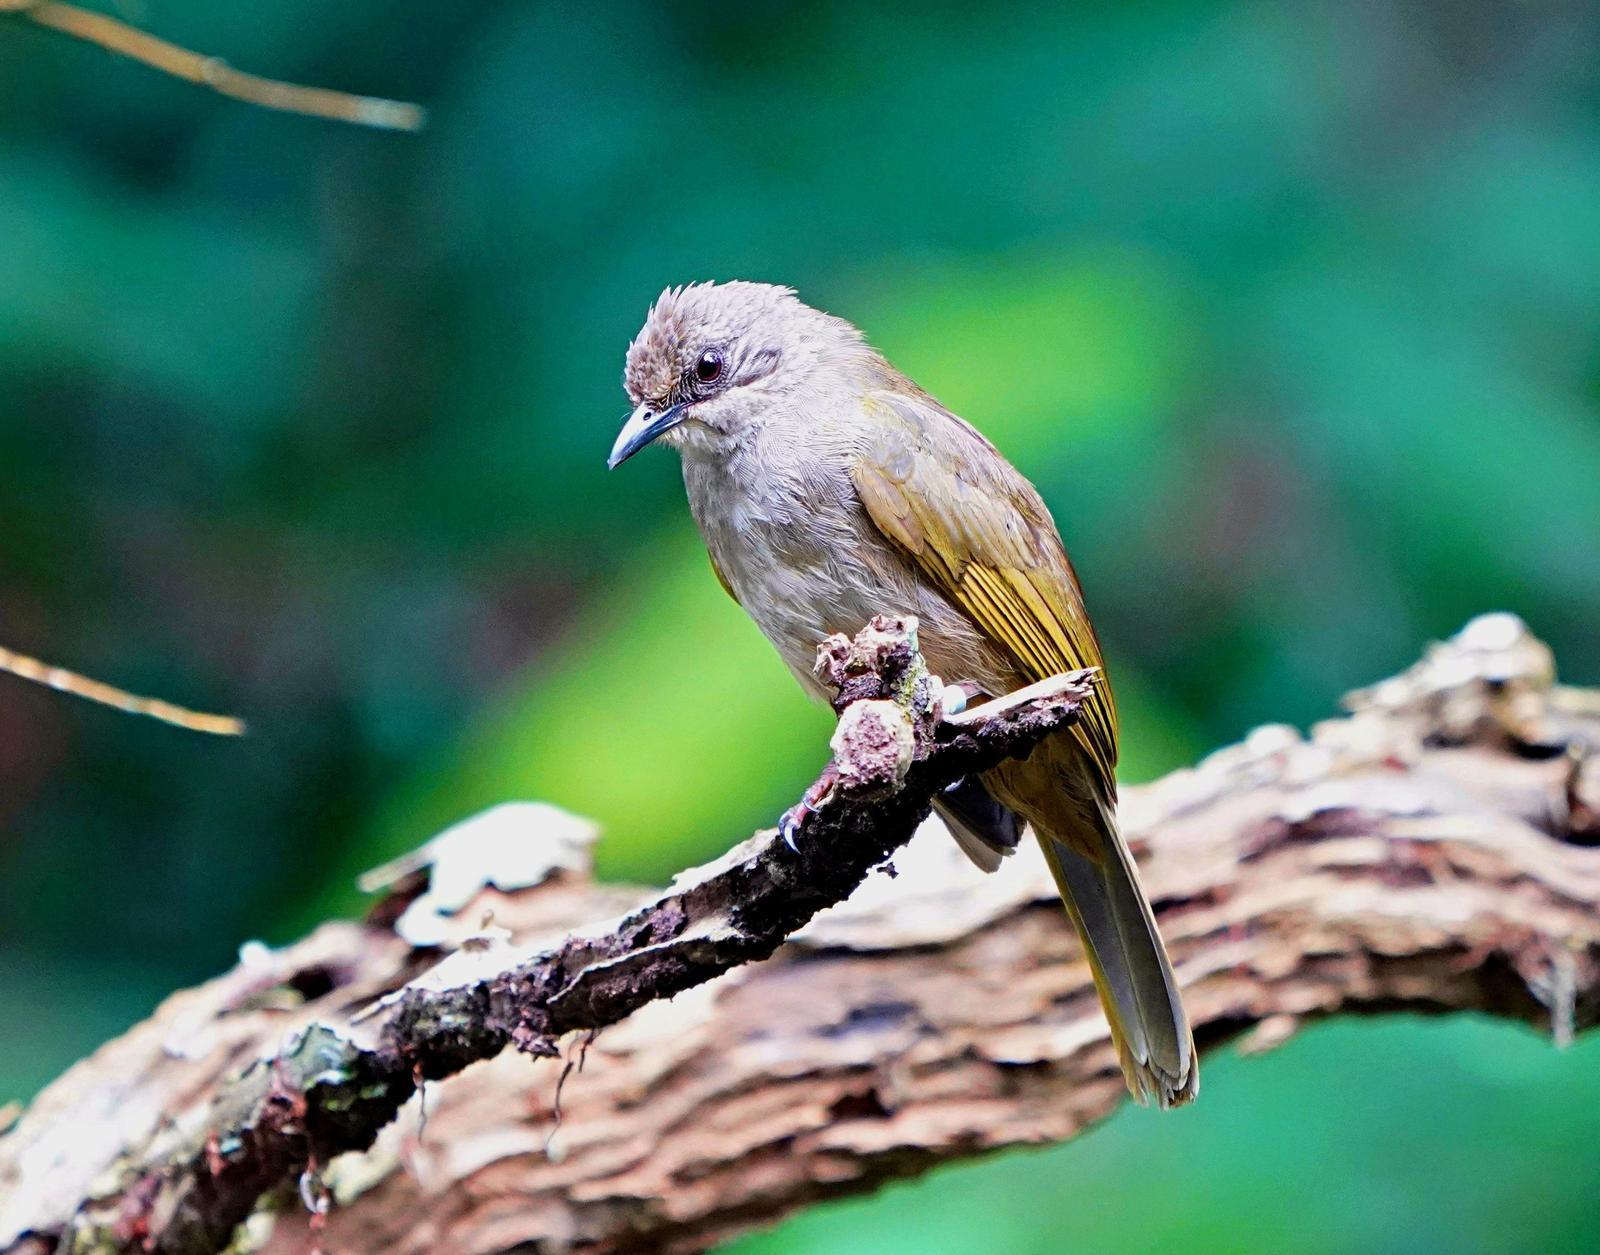 Olive-winged Bulbul Photo by Steven Cheong